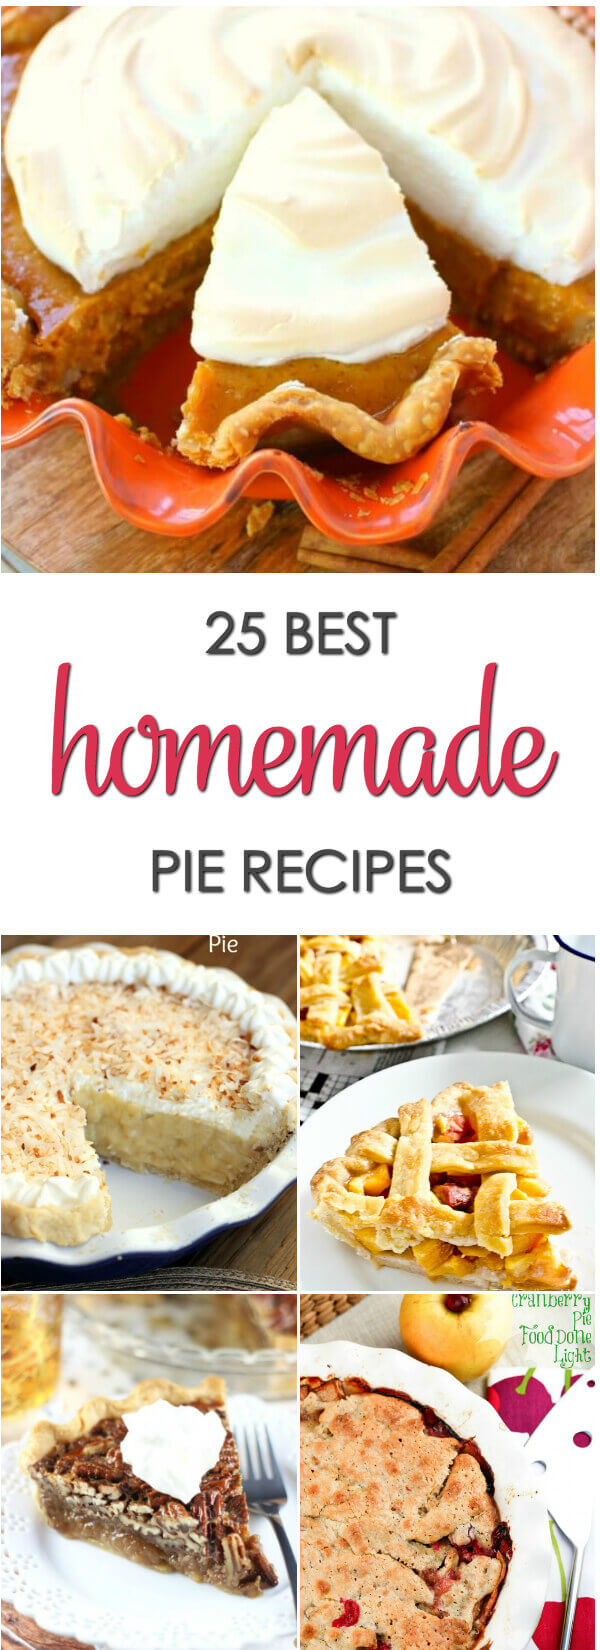 25 Best Homemade Pie Recipes